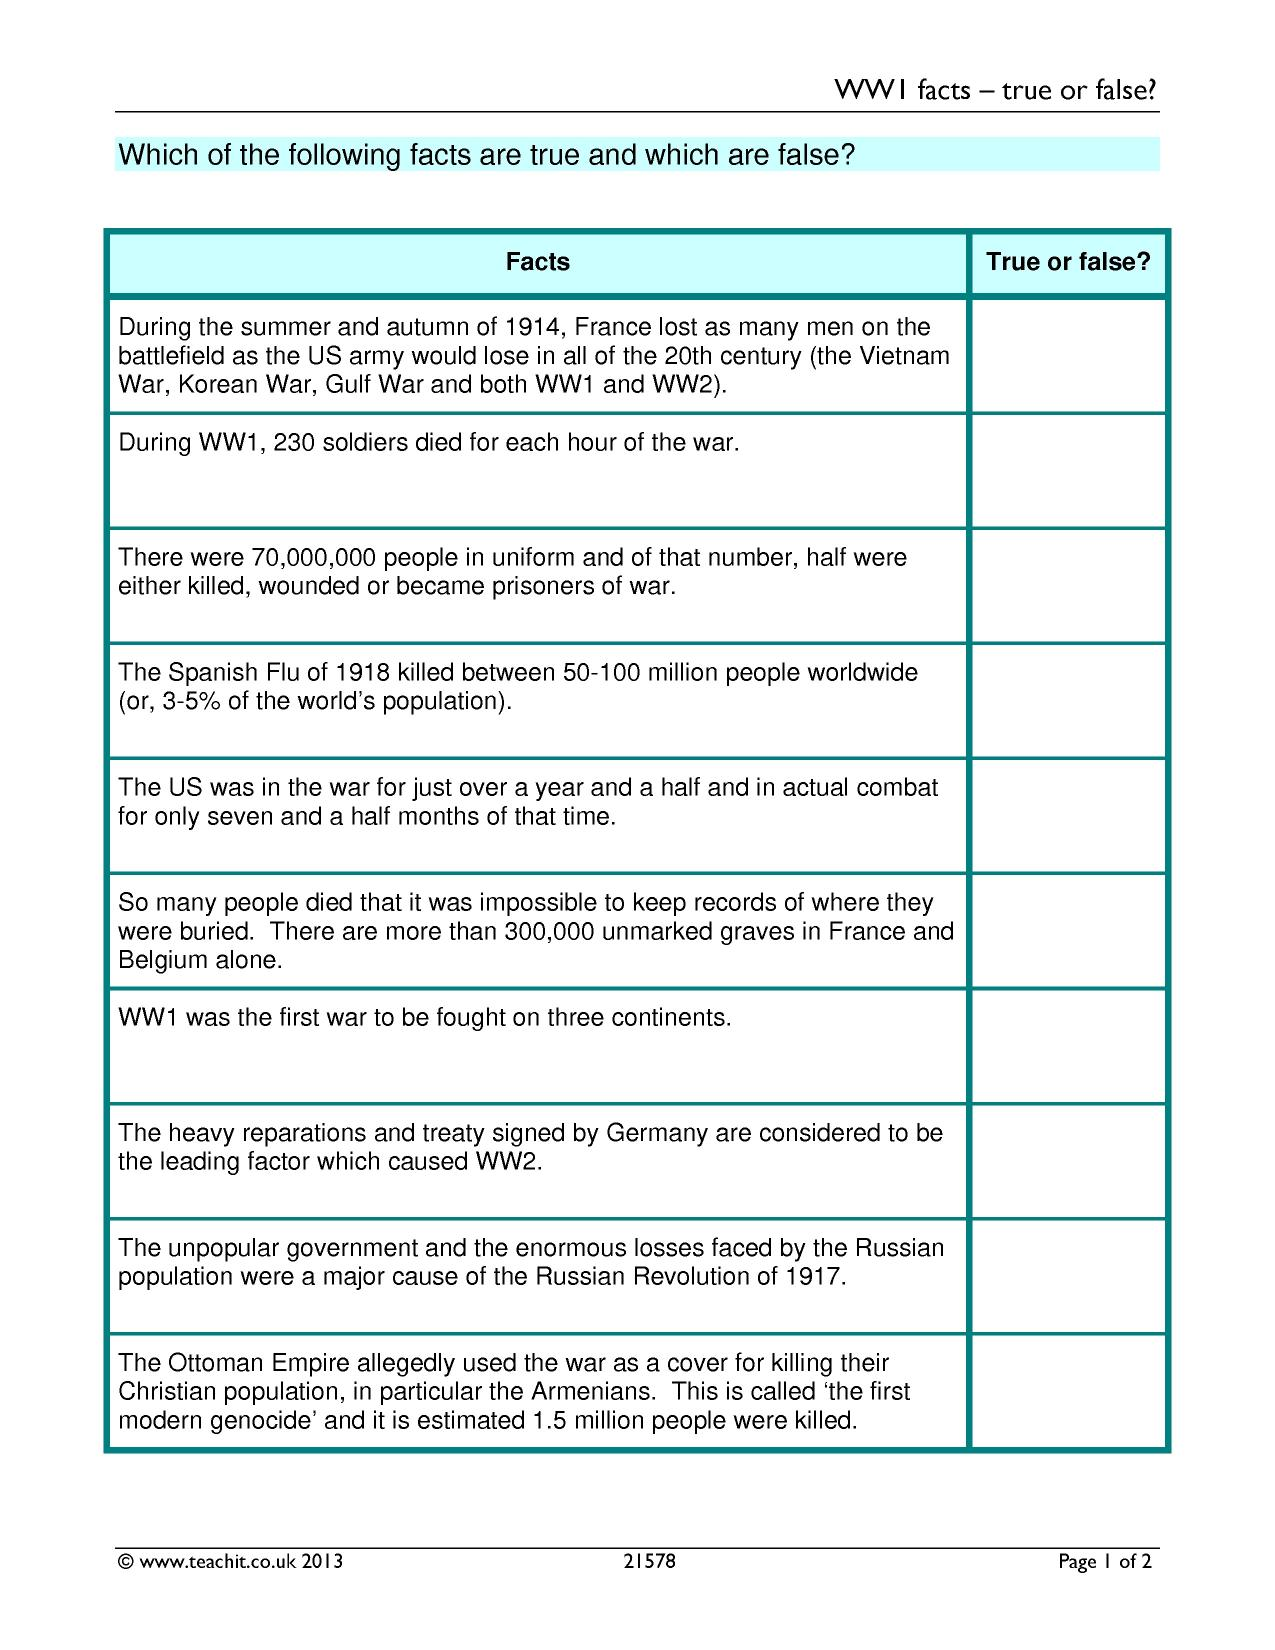 Ks4 Poems Resources For English Teachers